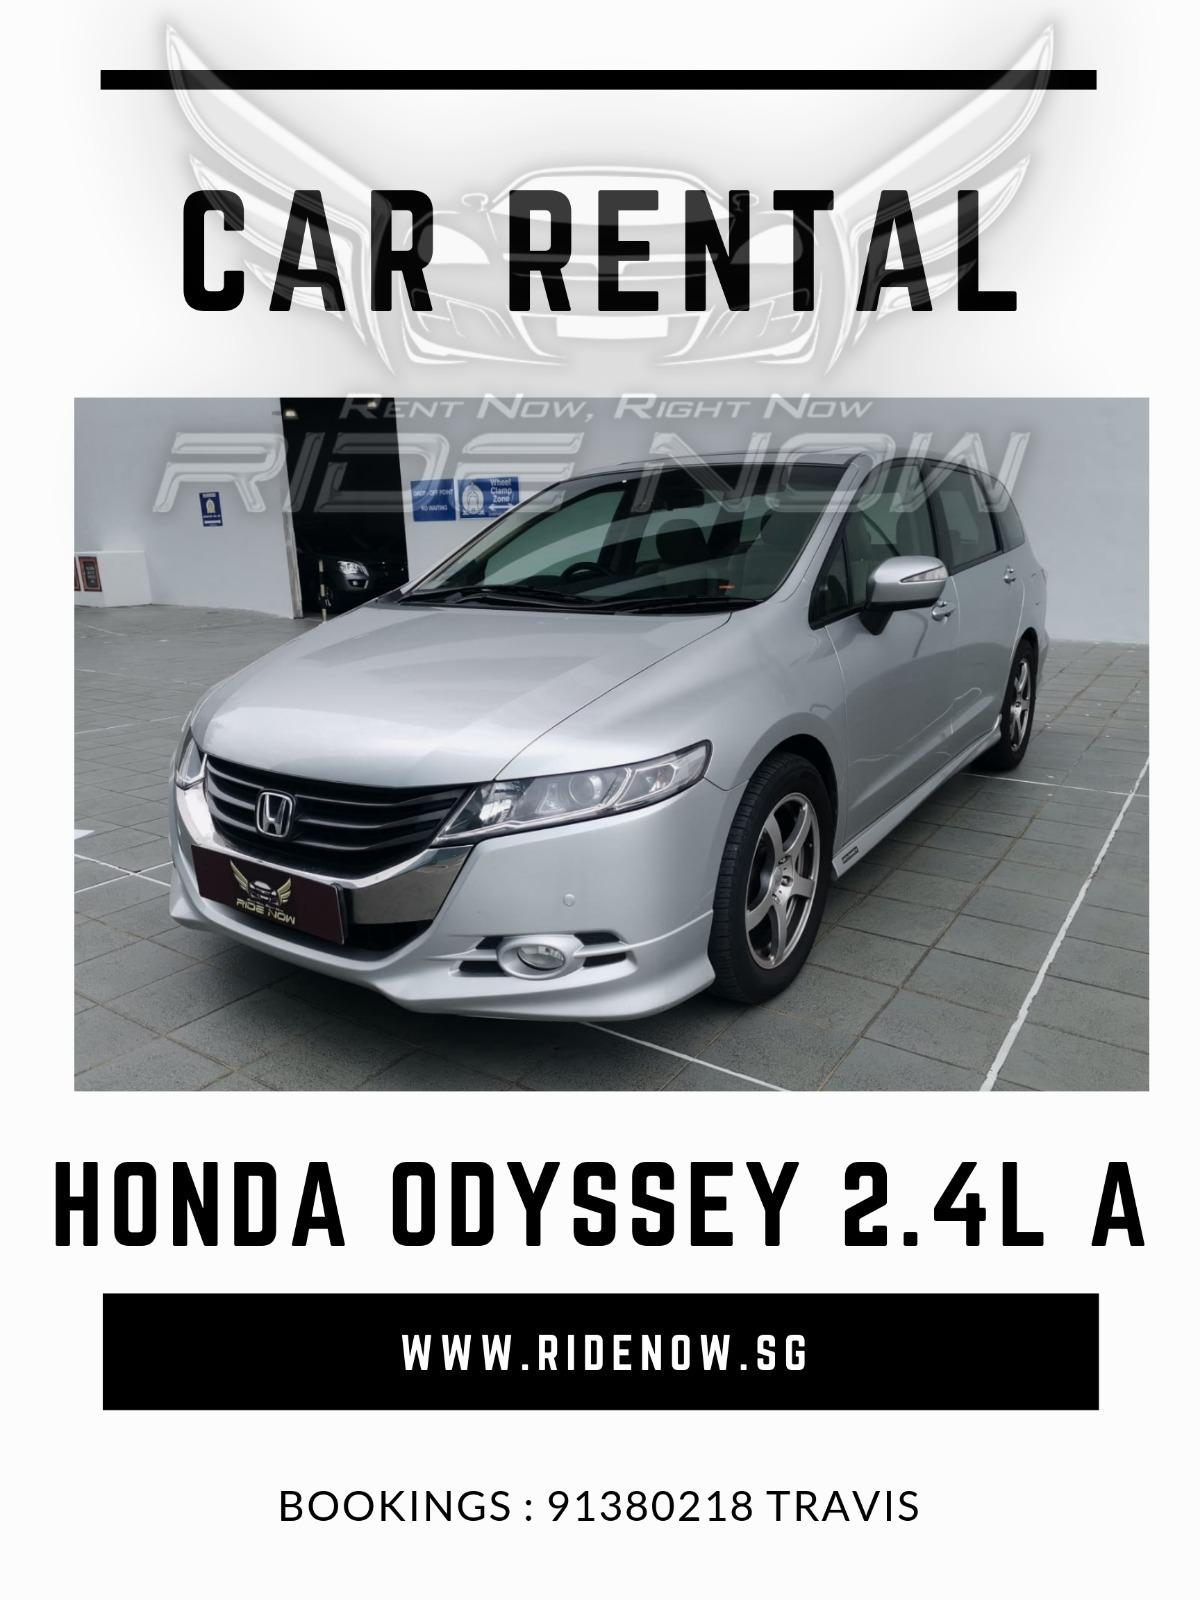 Honda Odyssey 2.4A (7-seater) Comfortable MPV available for Personal and Private Hire Use